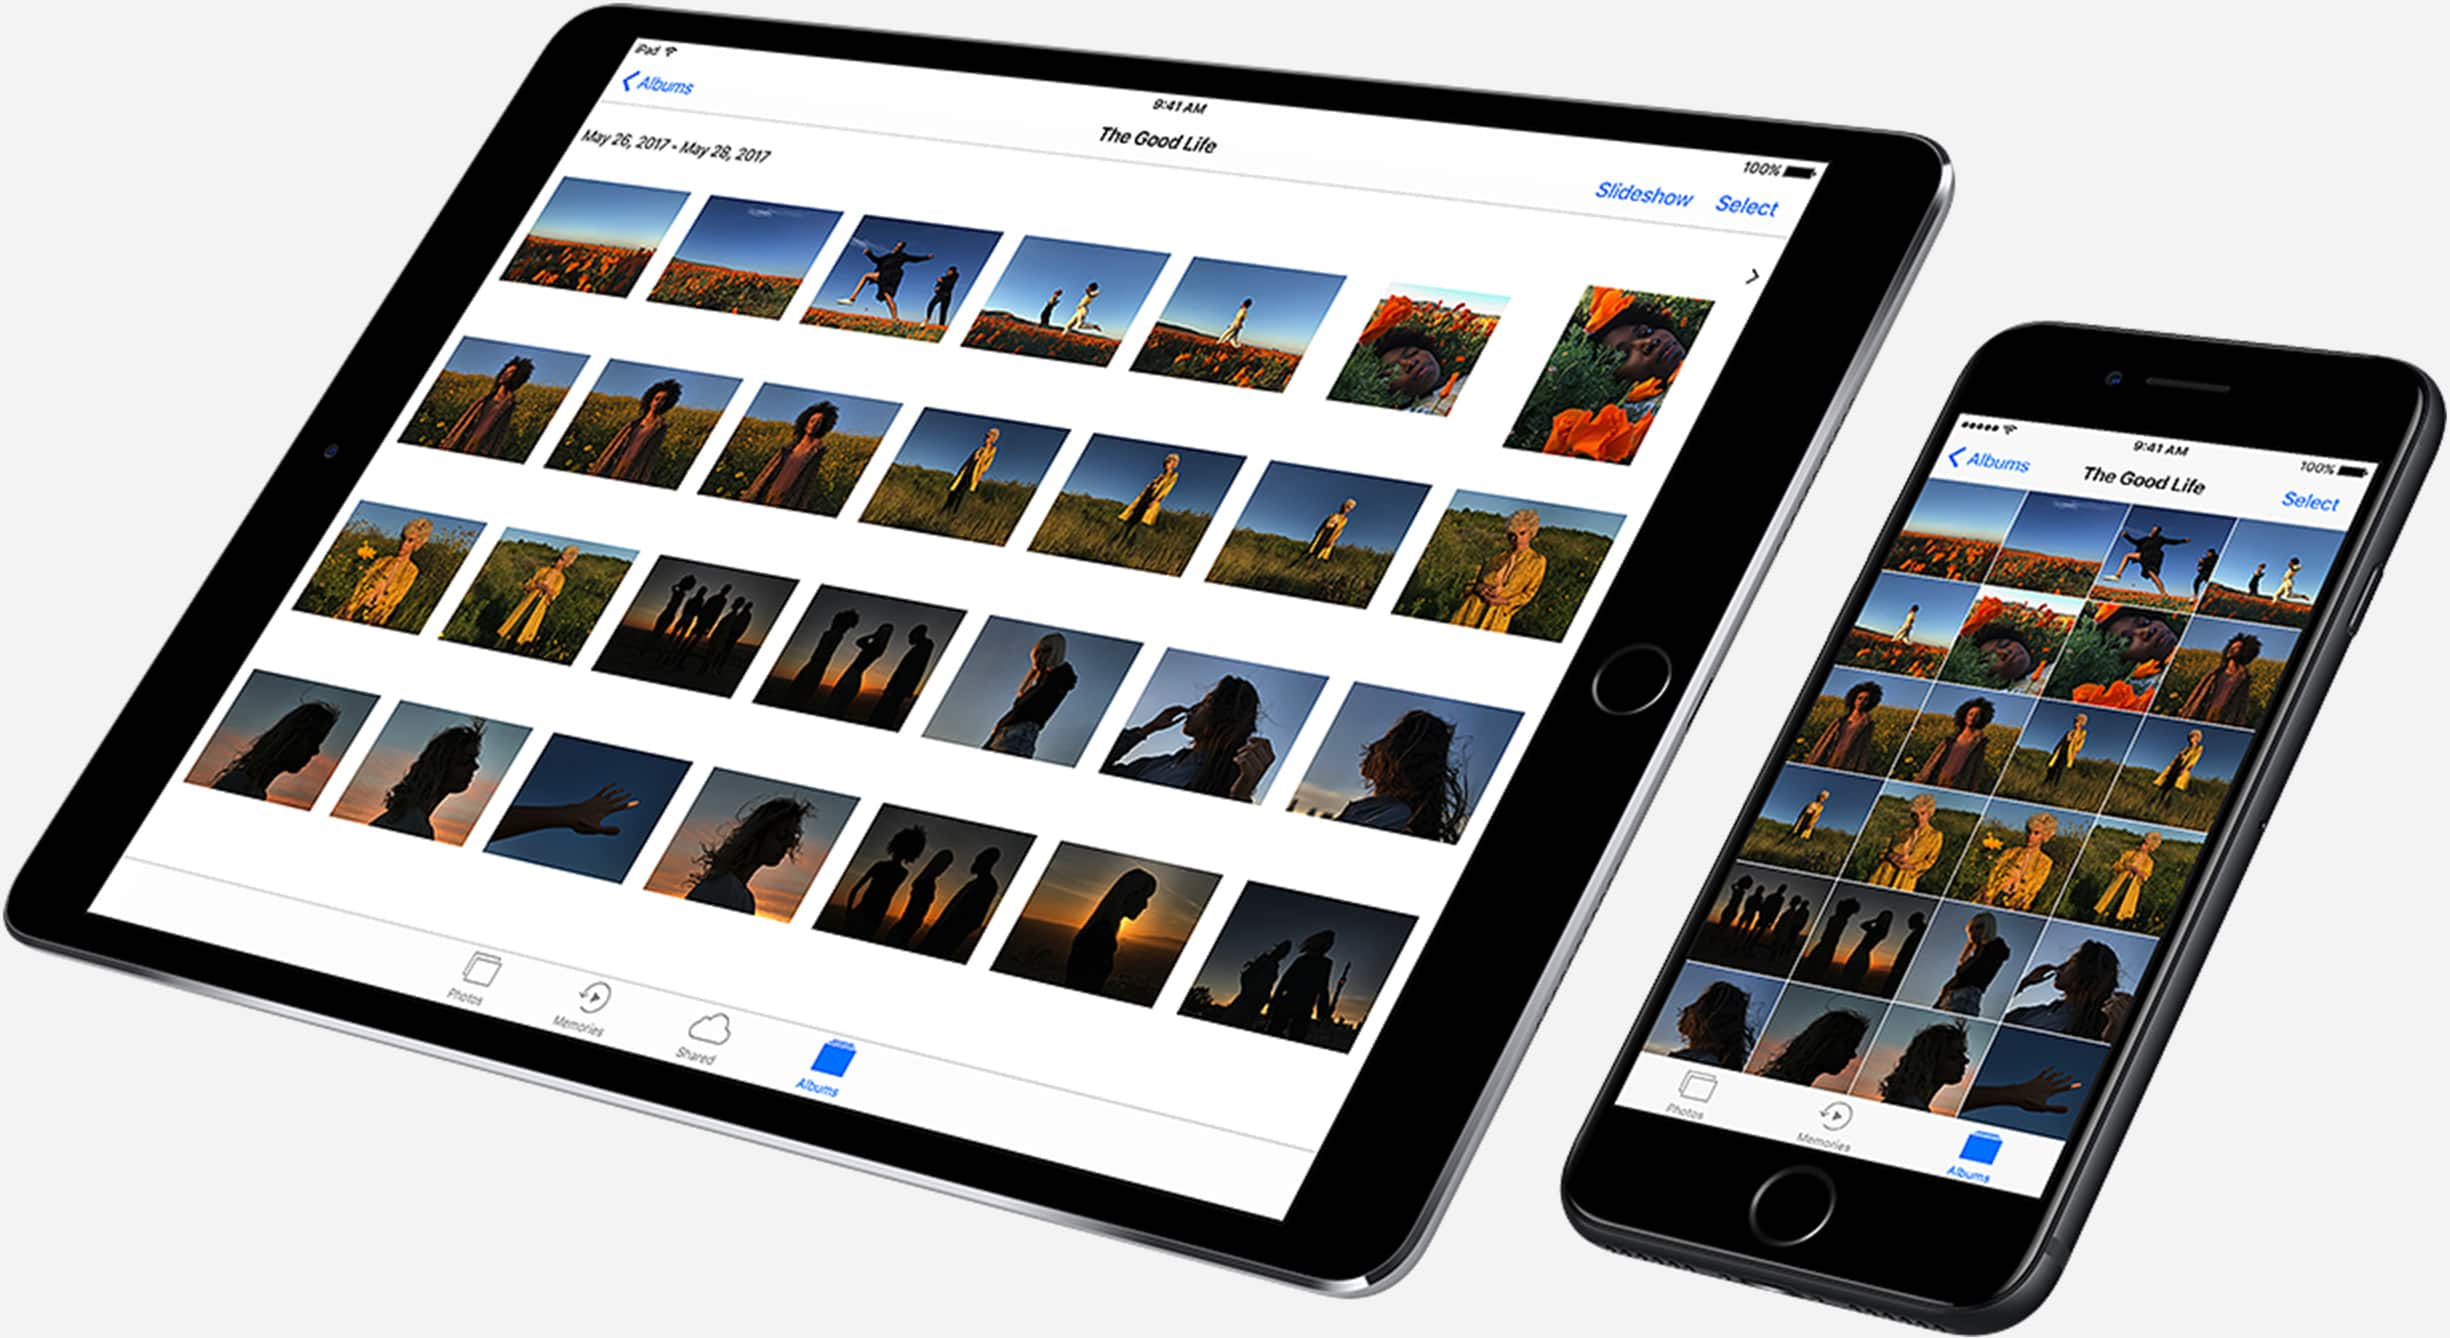 Begin An Email On Your Iphone And Finish It On Ipad Pro Or Copy Images,  Video, Or Text On Your Iphone, Then Paste To Your Ipad You Can Even Use  Airdrop To